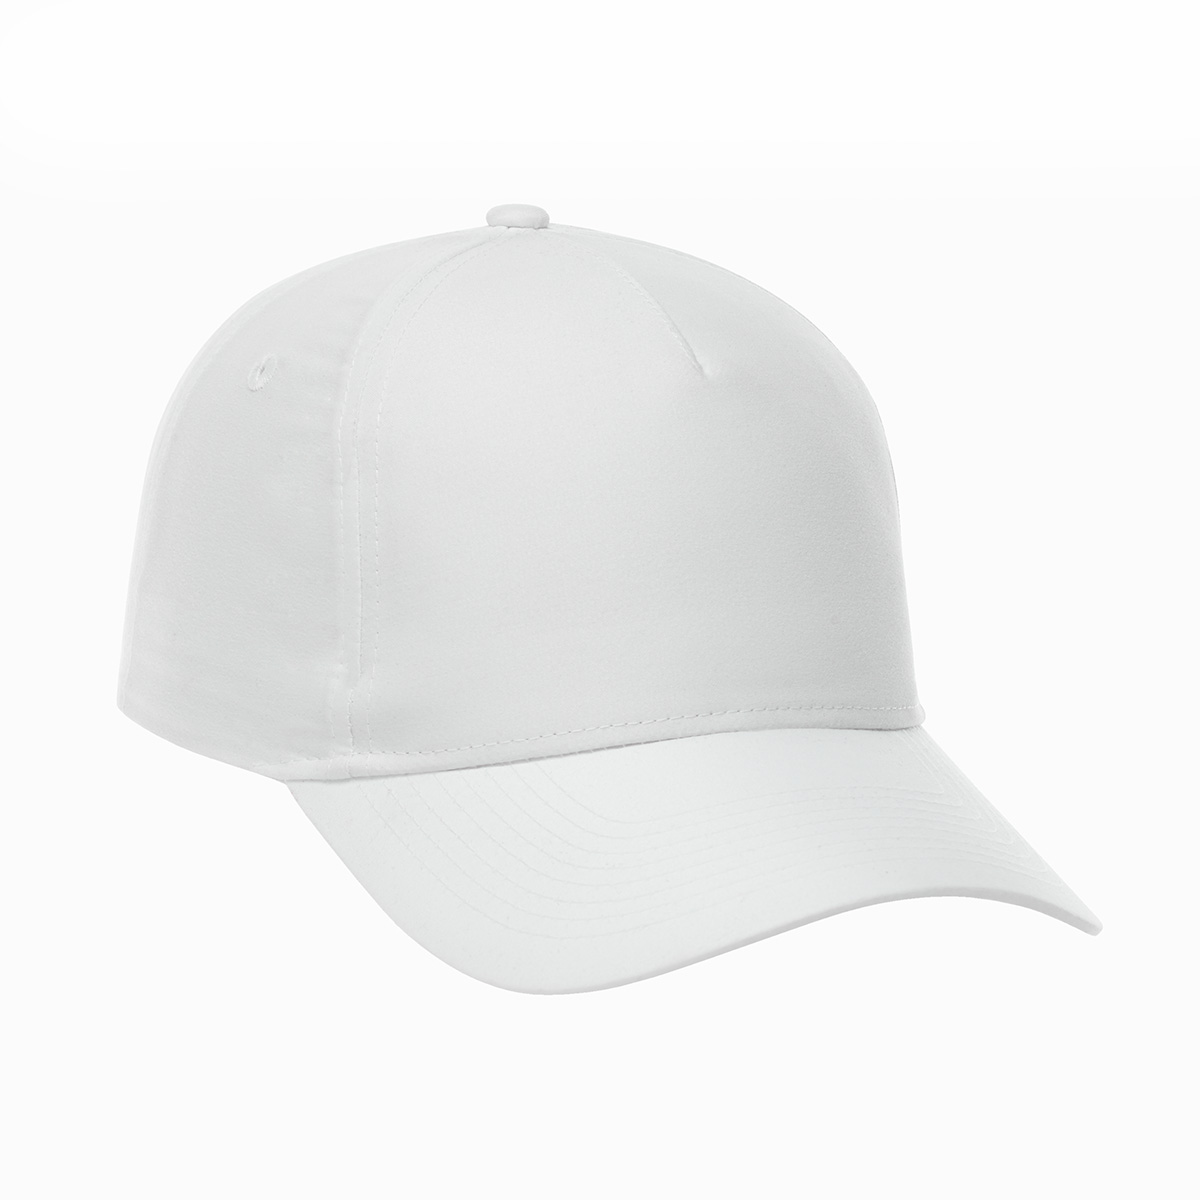 Dominate Ballcap, #32020 - Embroidered